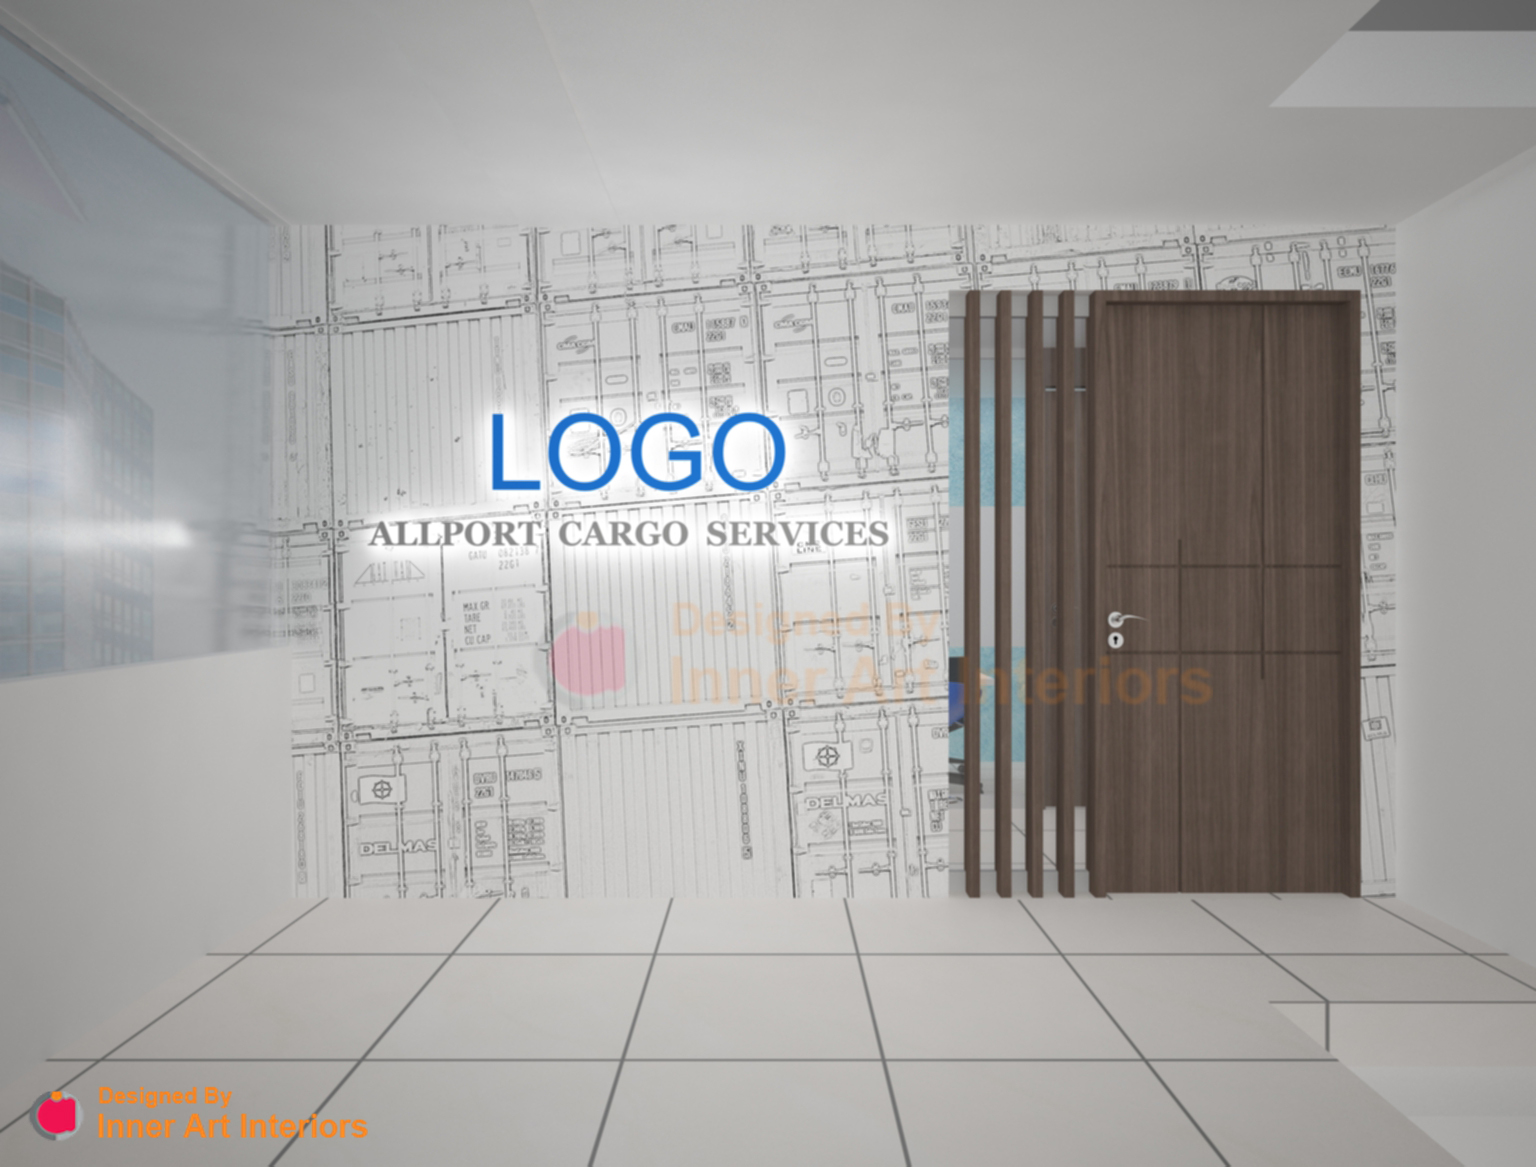 Cargo Office (Cavlary Ground)